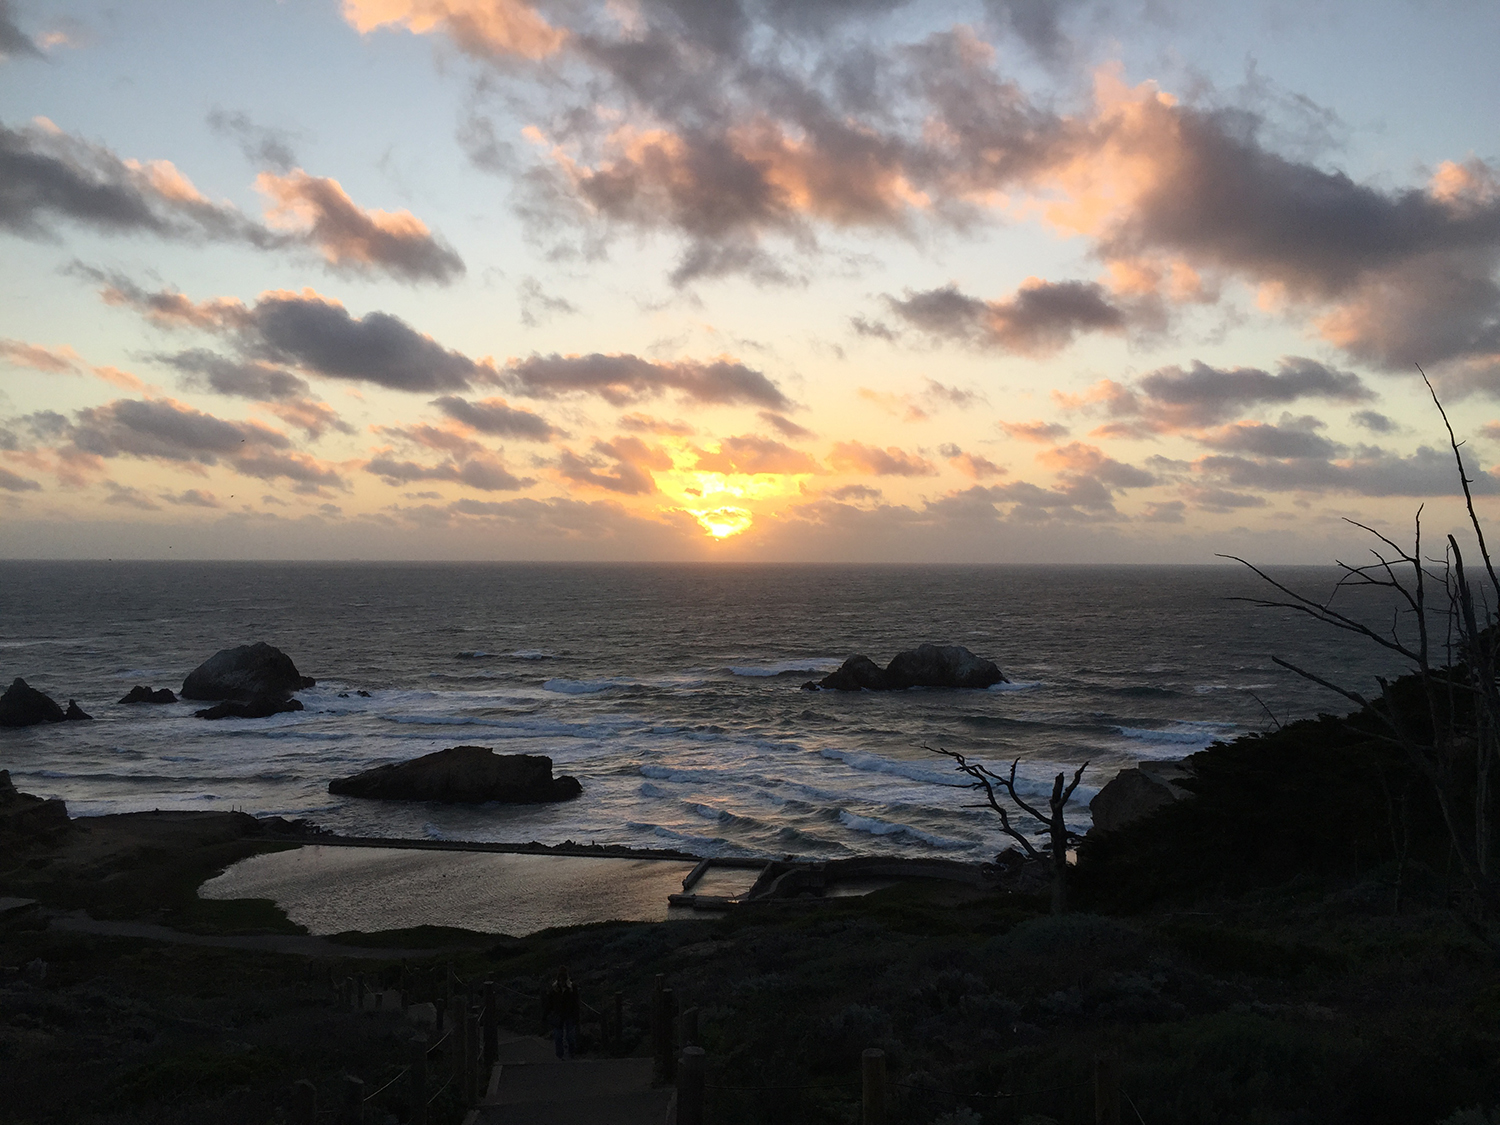 Above the Sutro Baths   5:50 pm